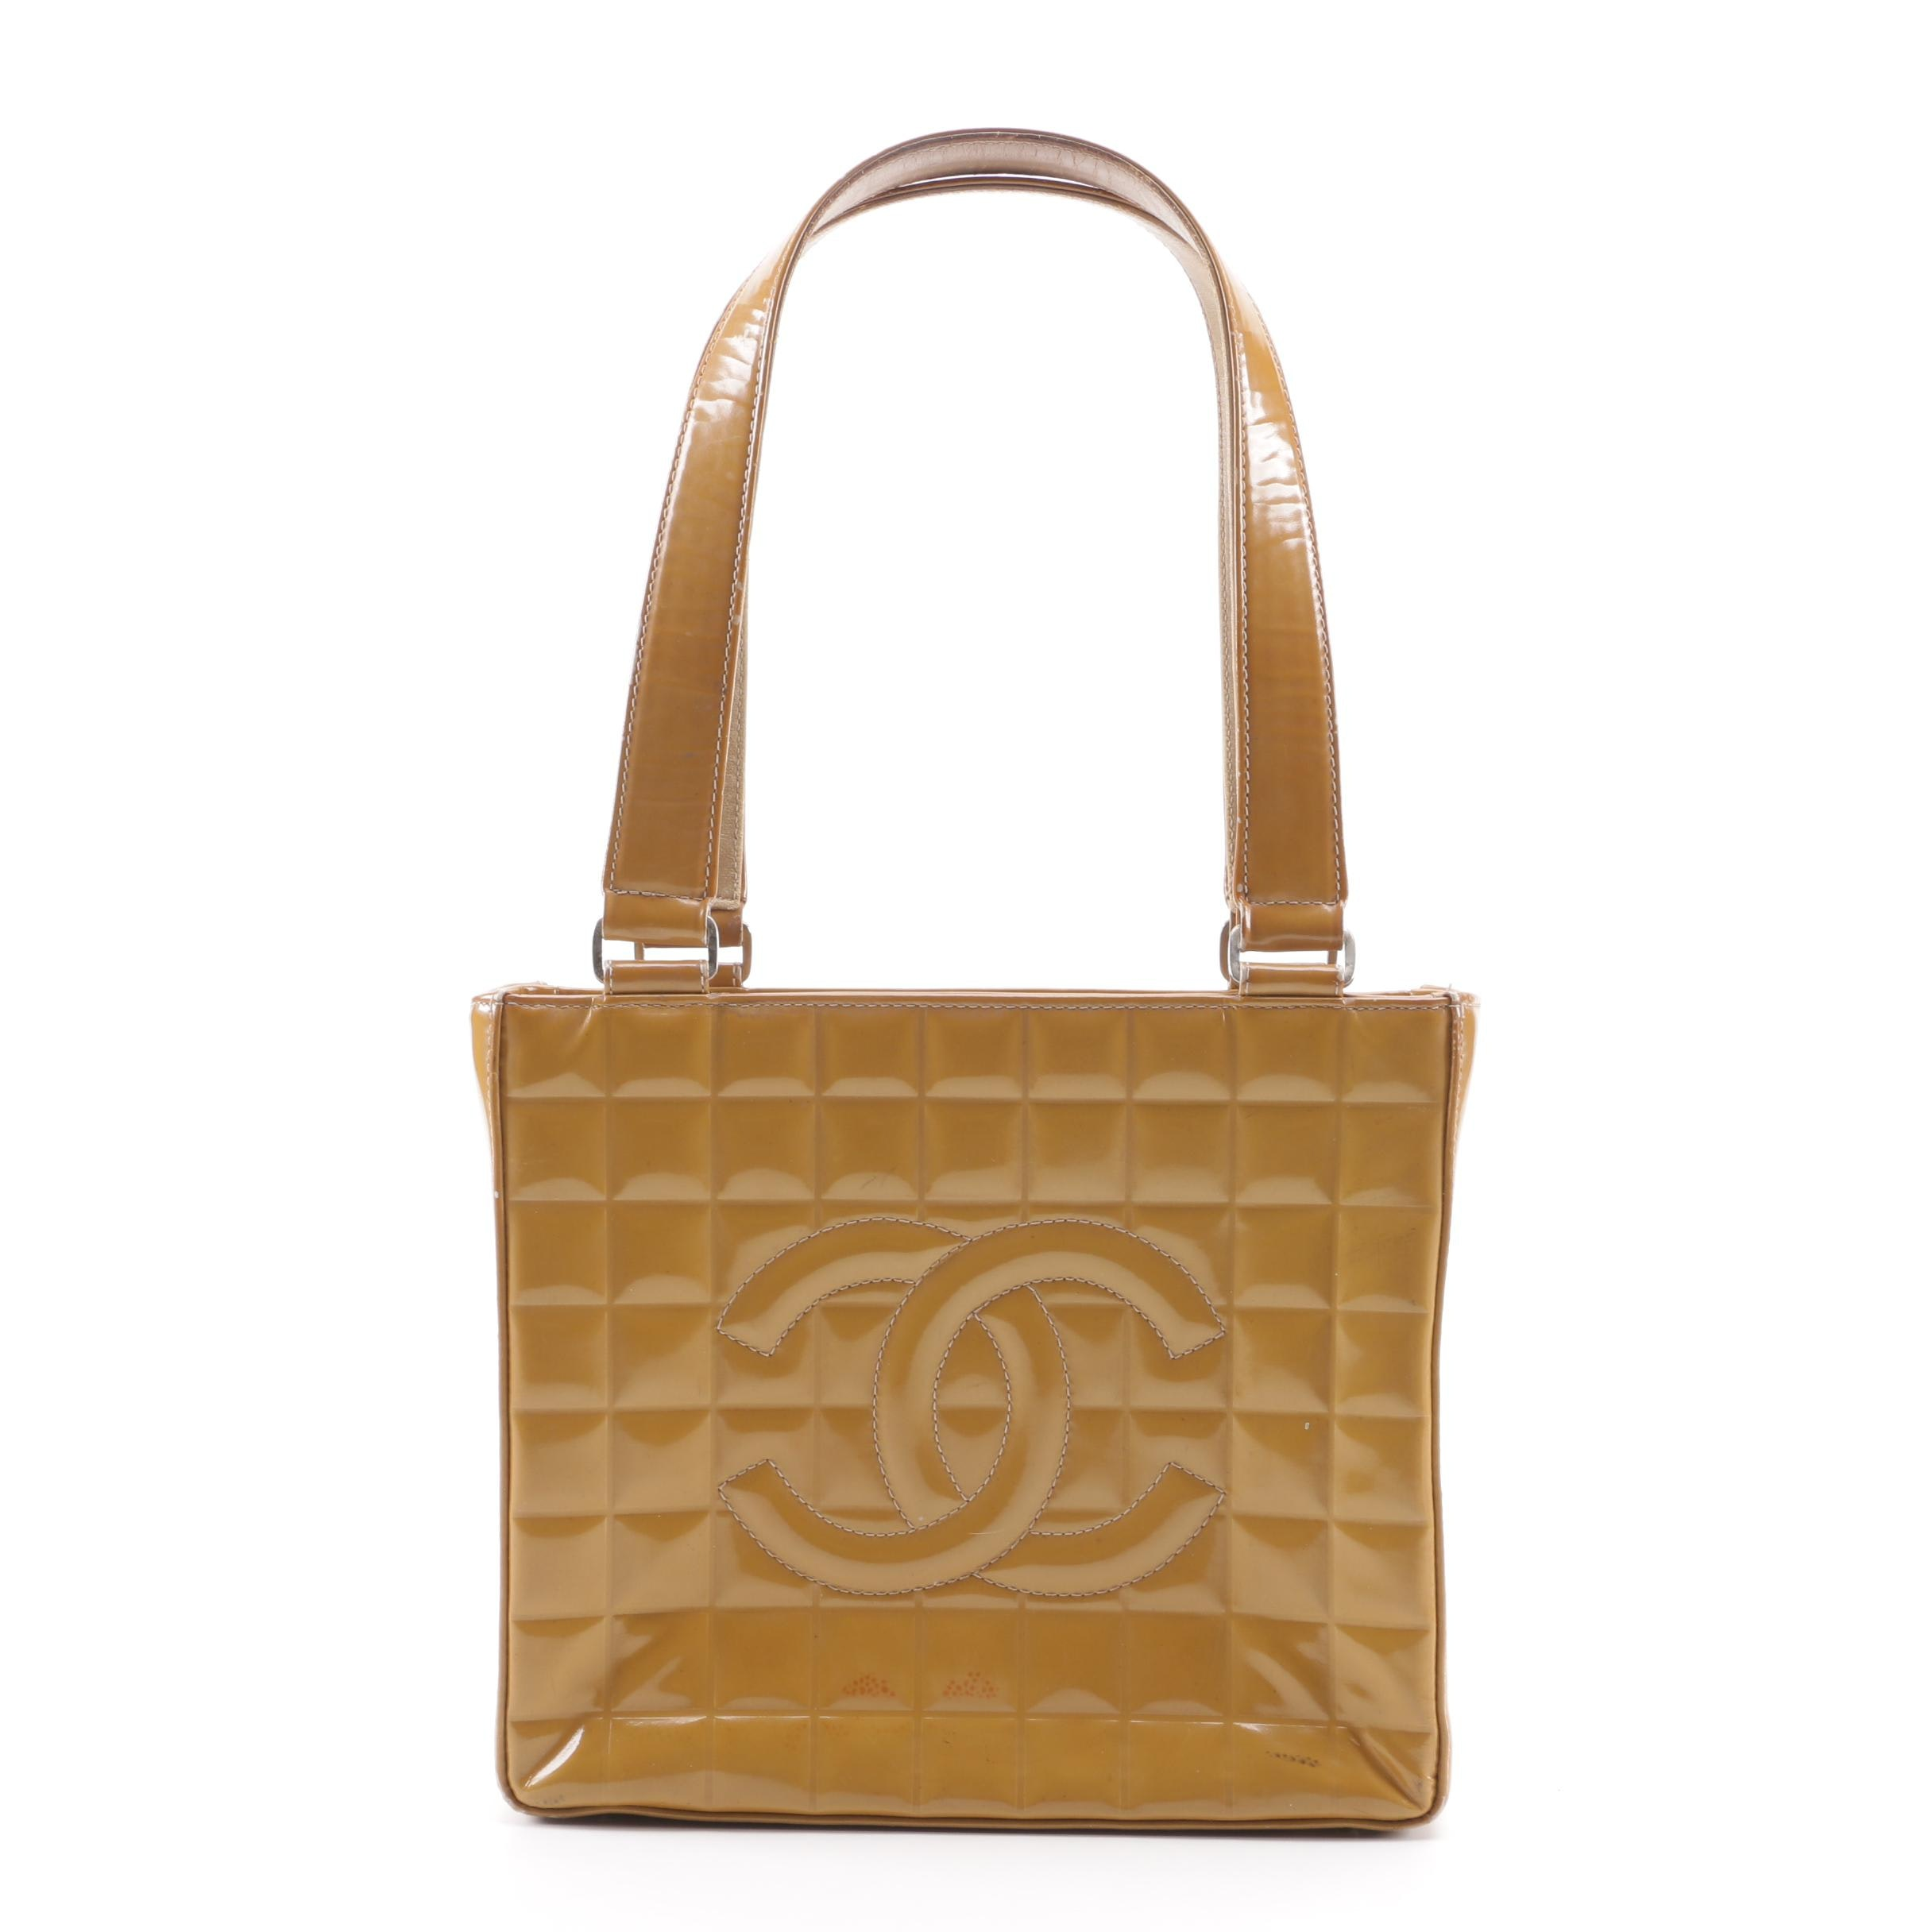 Circa 2002 Chanel Quilted Embossed Caramel Patent Leather Shoulder Bag